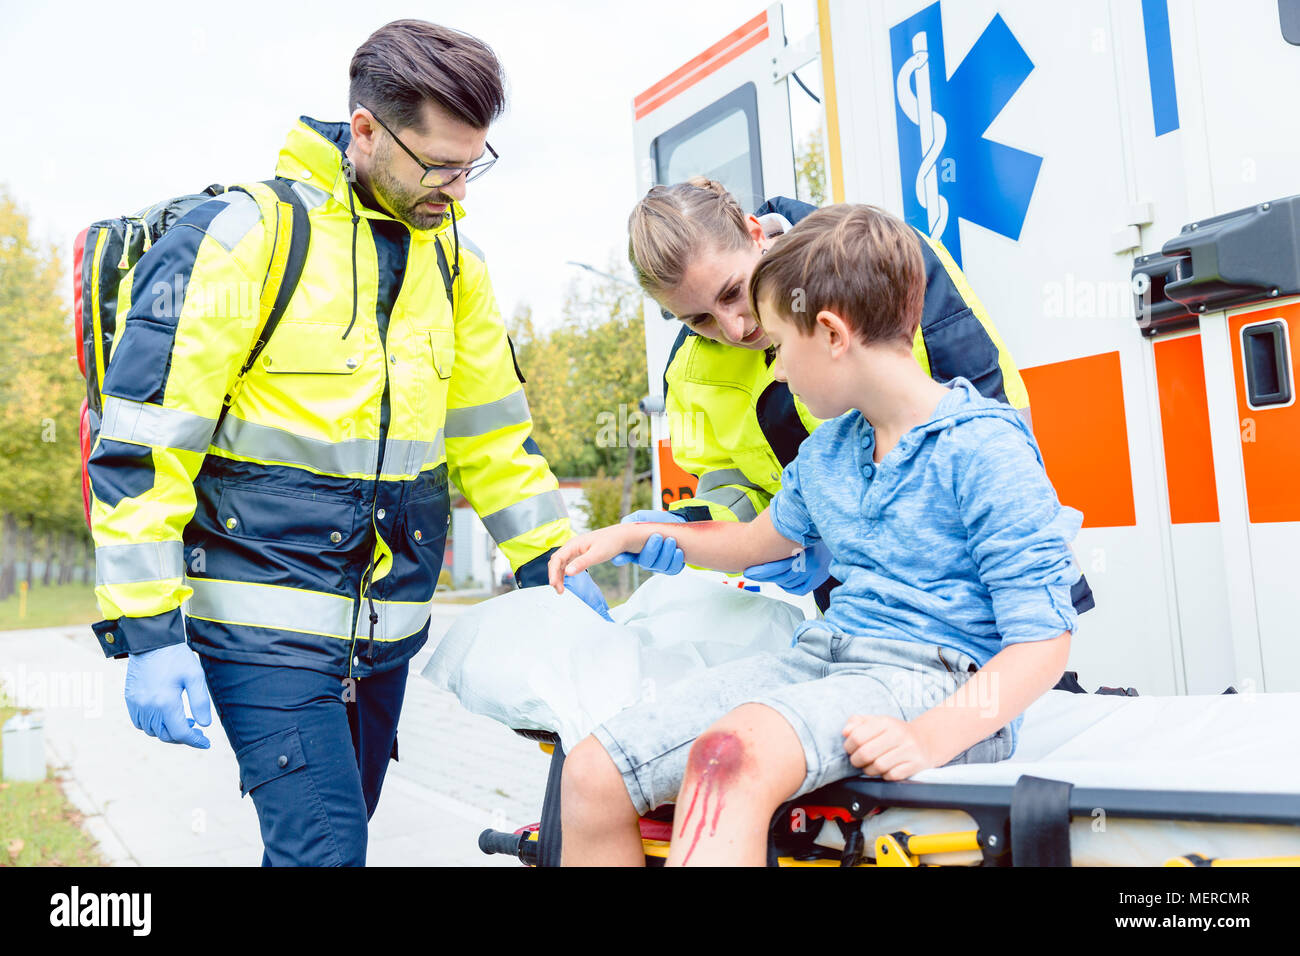 Emergency doctors caring for accident victim boy Stock Photo